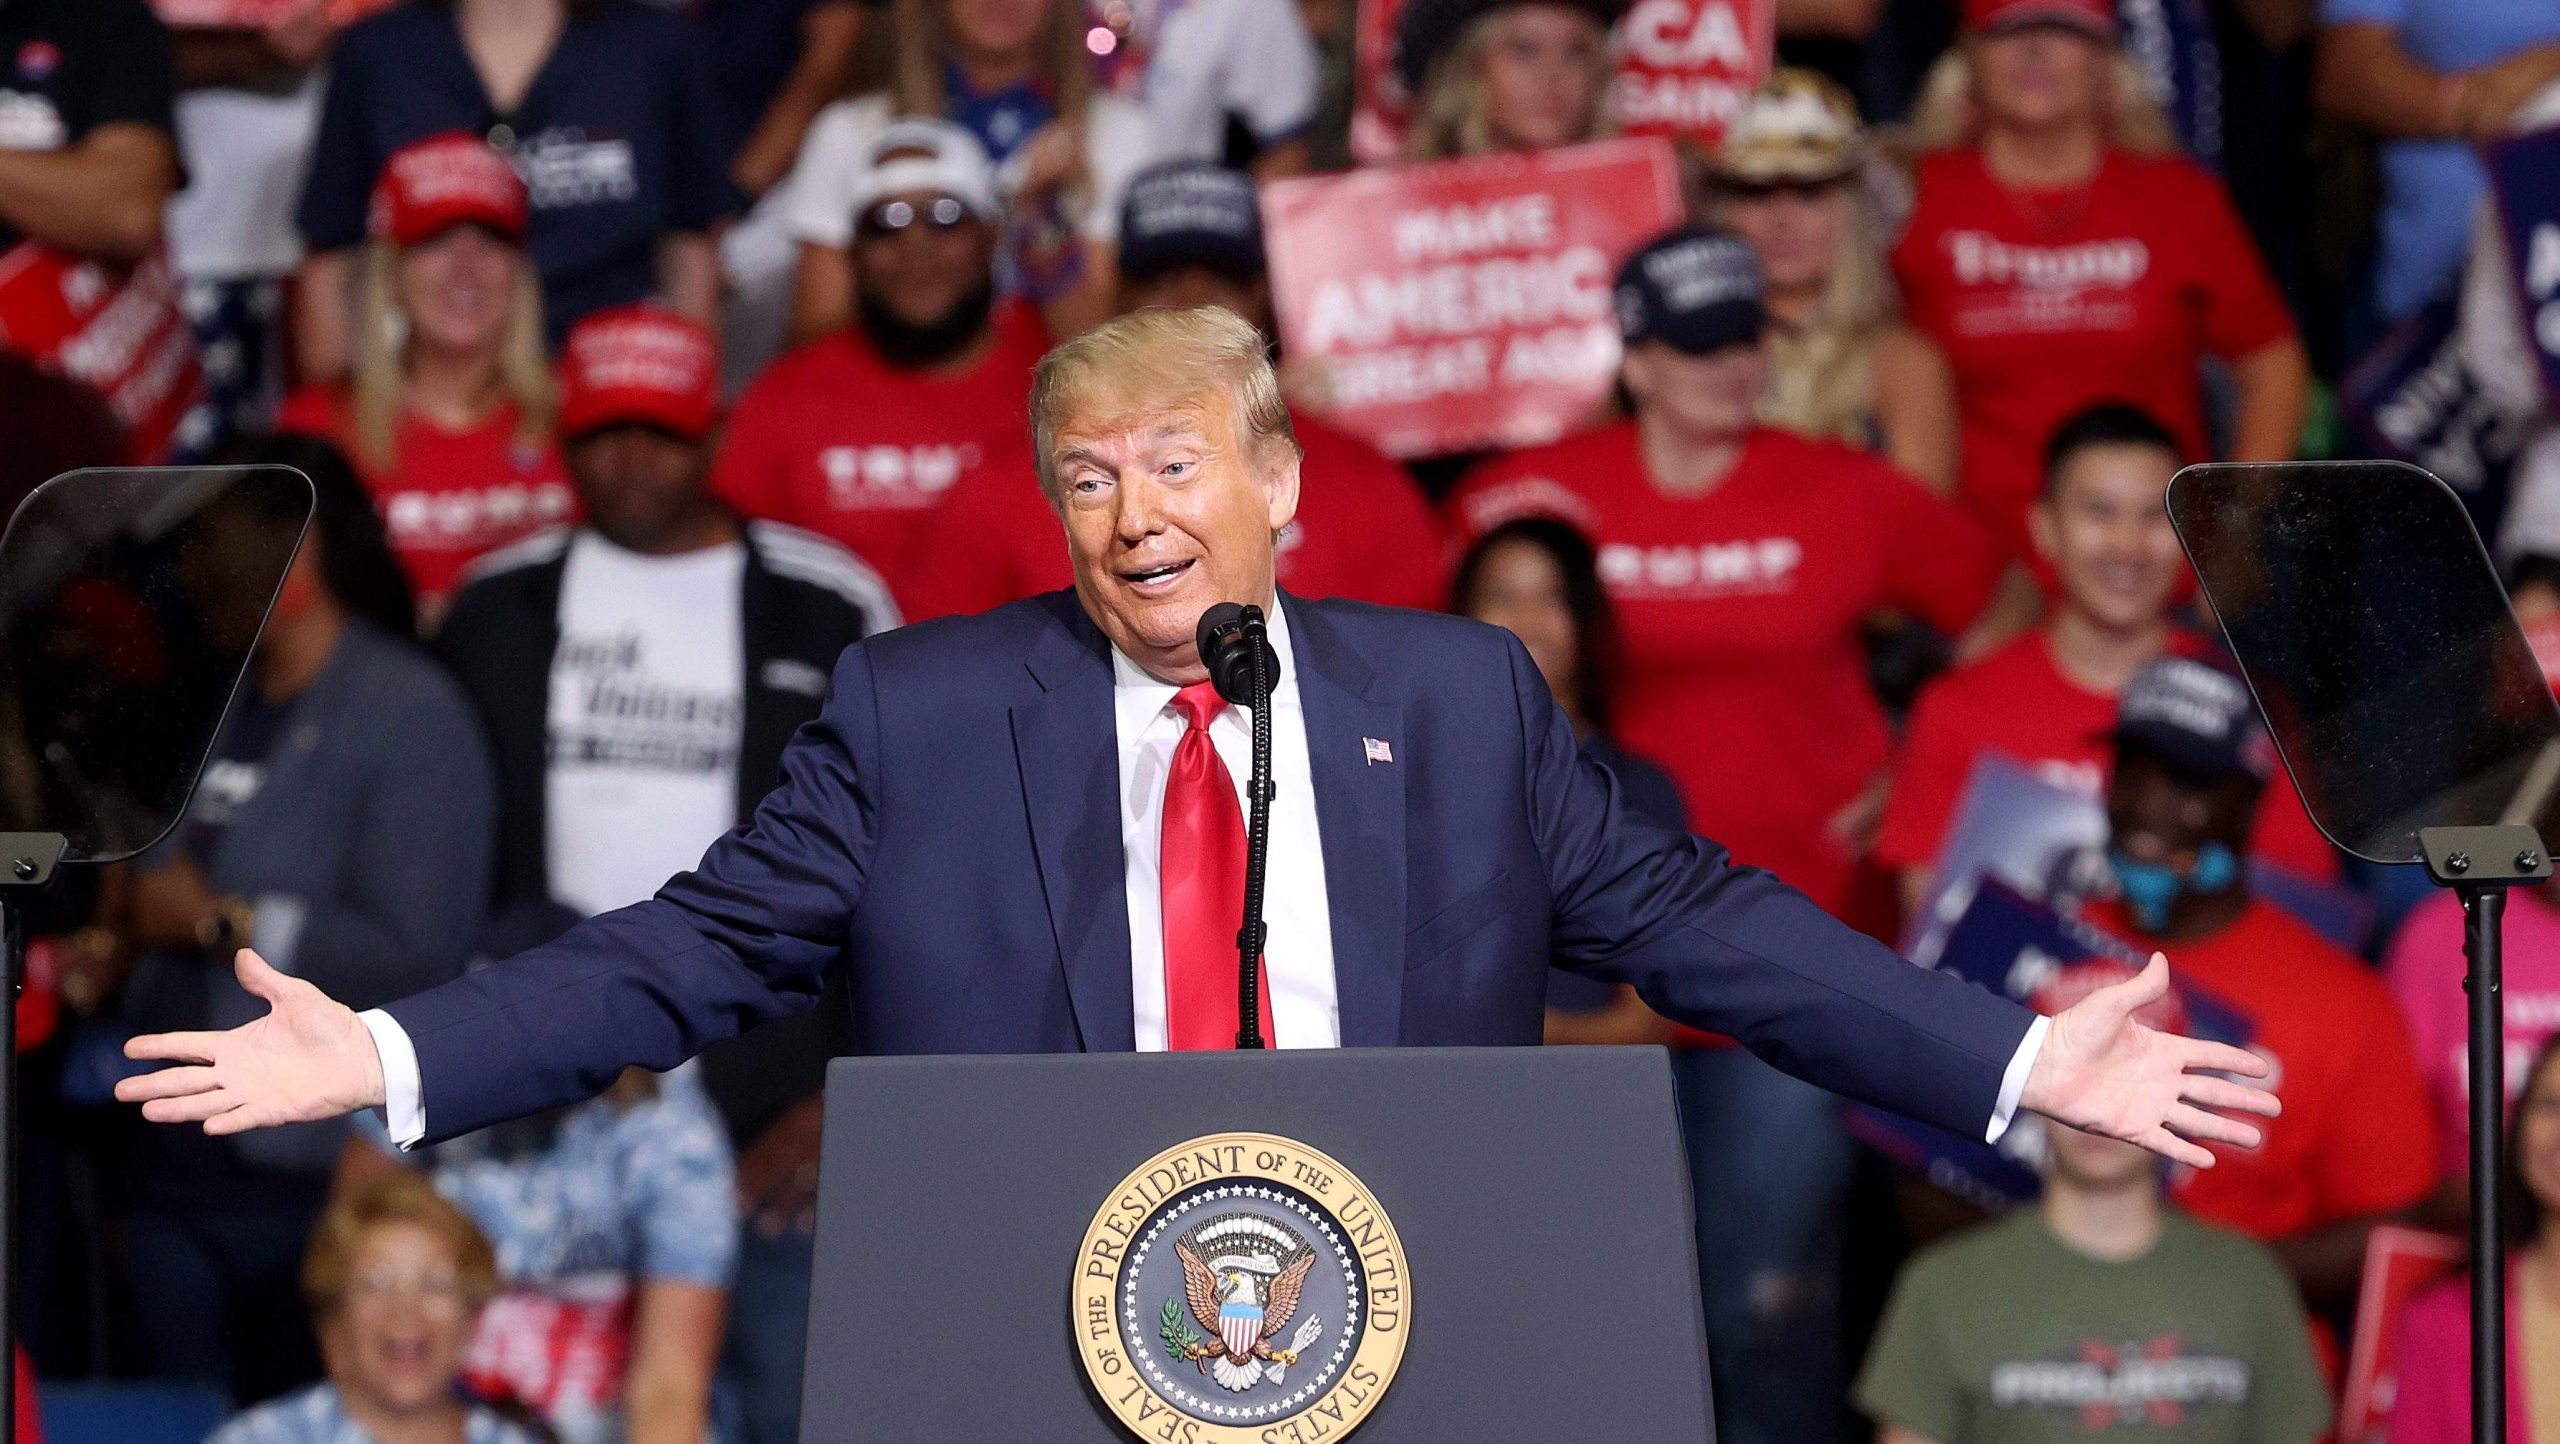 Watch: Tulsa Crowd Cheers As Trump Drinks Glass Of Water With 1 Hand At Rally photo